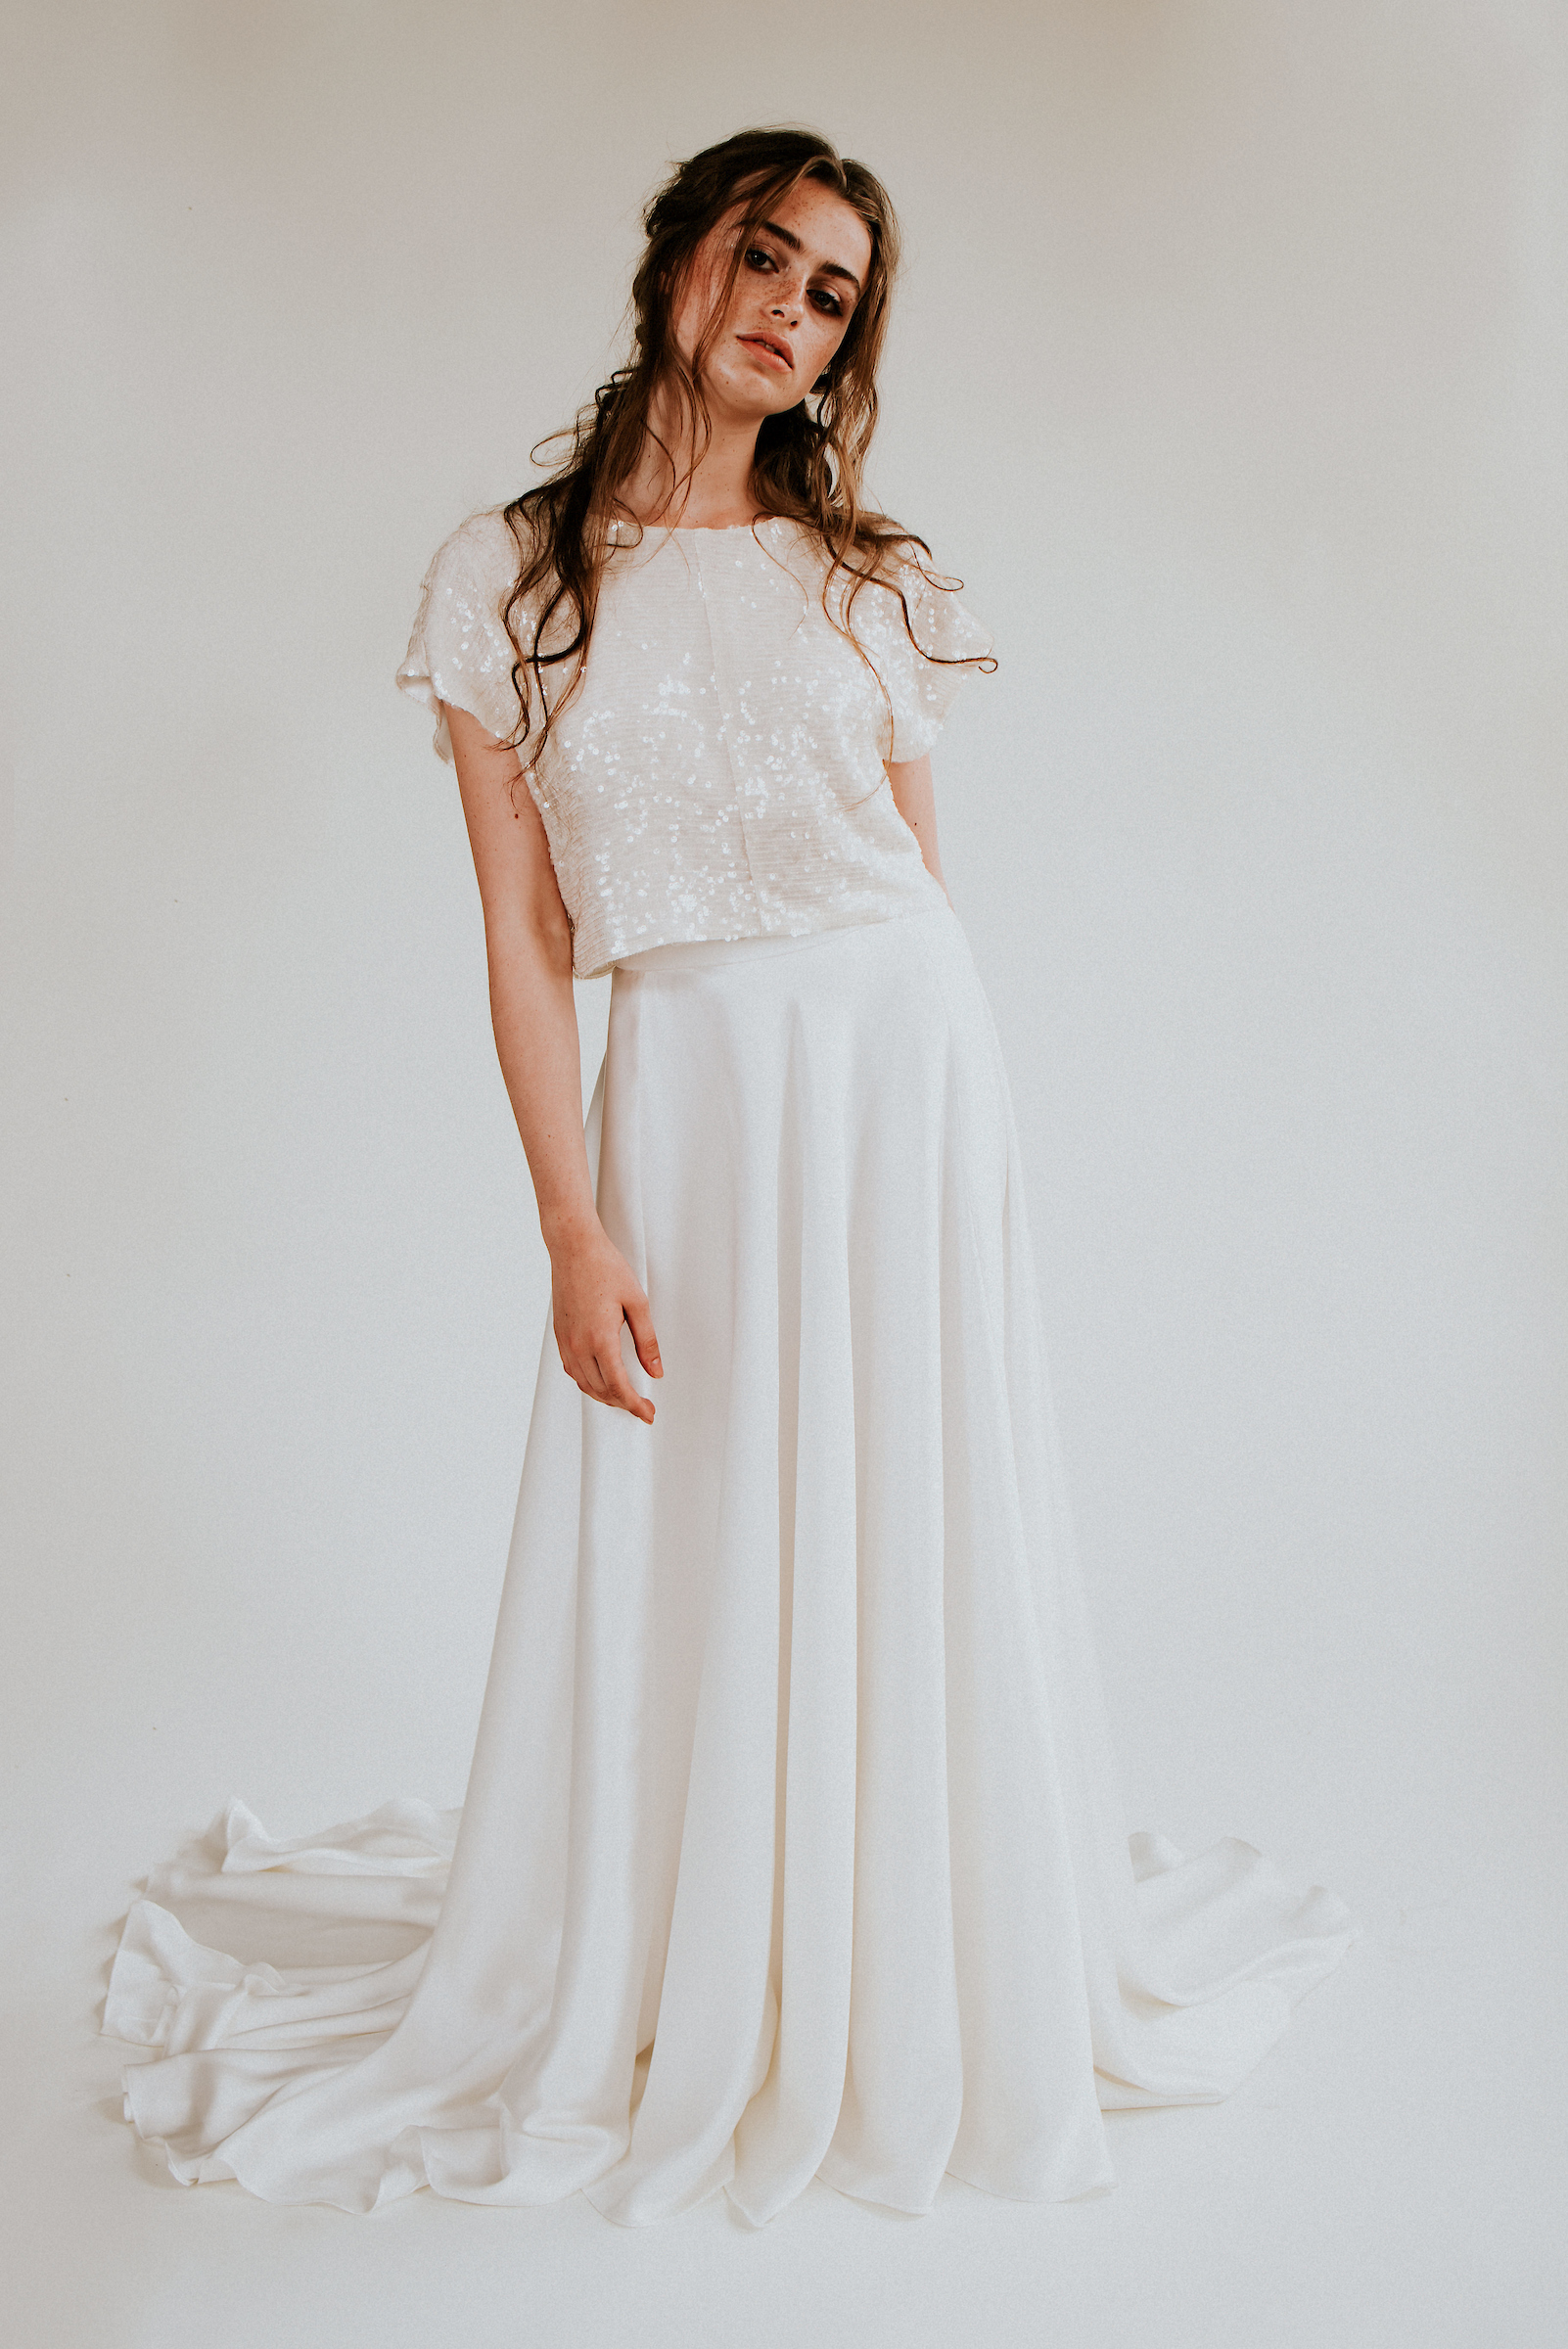 cool modern eco friendly wedding dress collection by Rolling in Roses for 2020